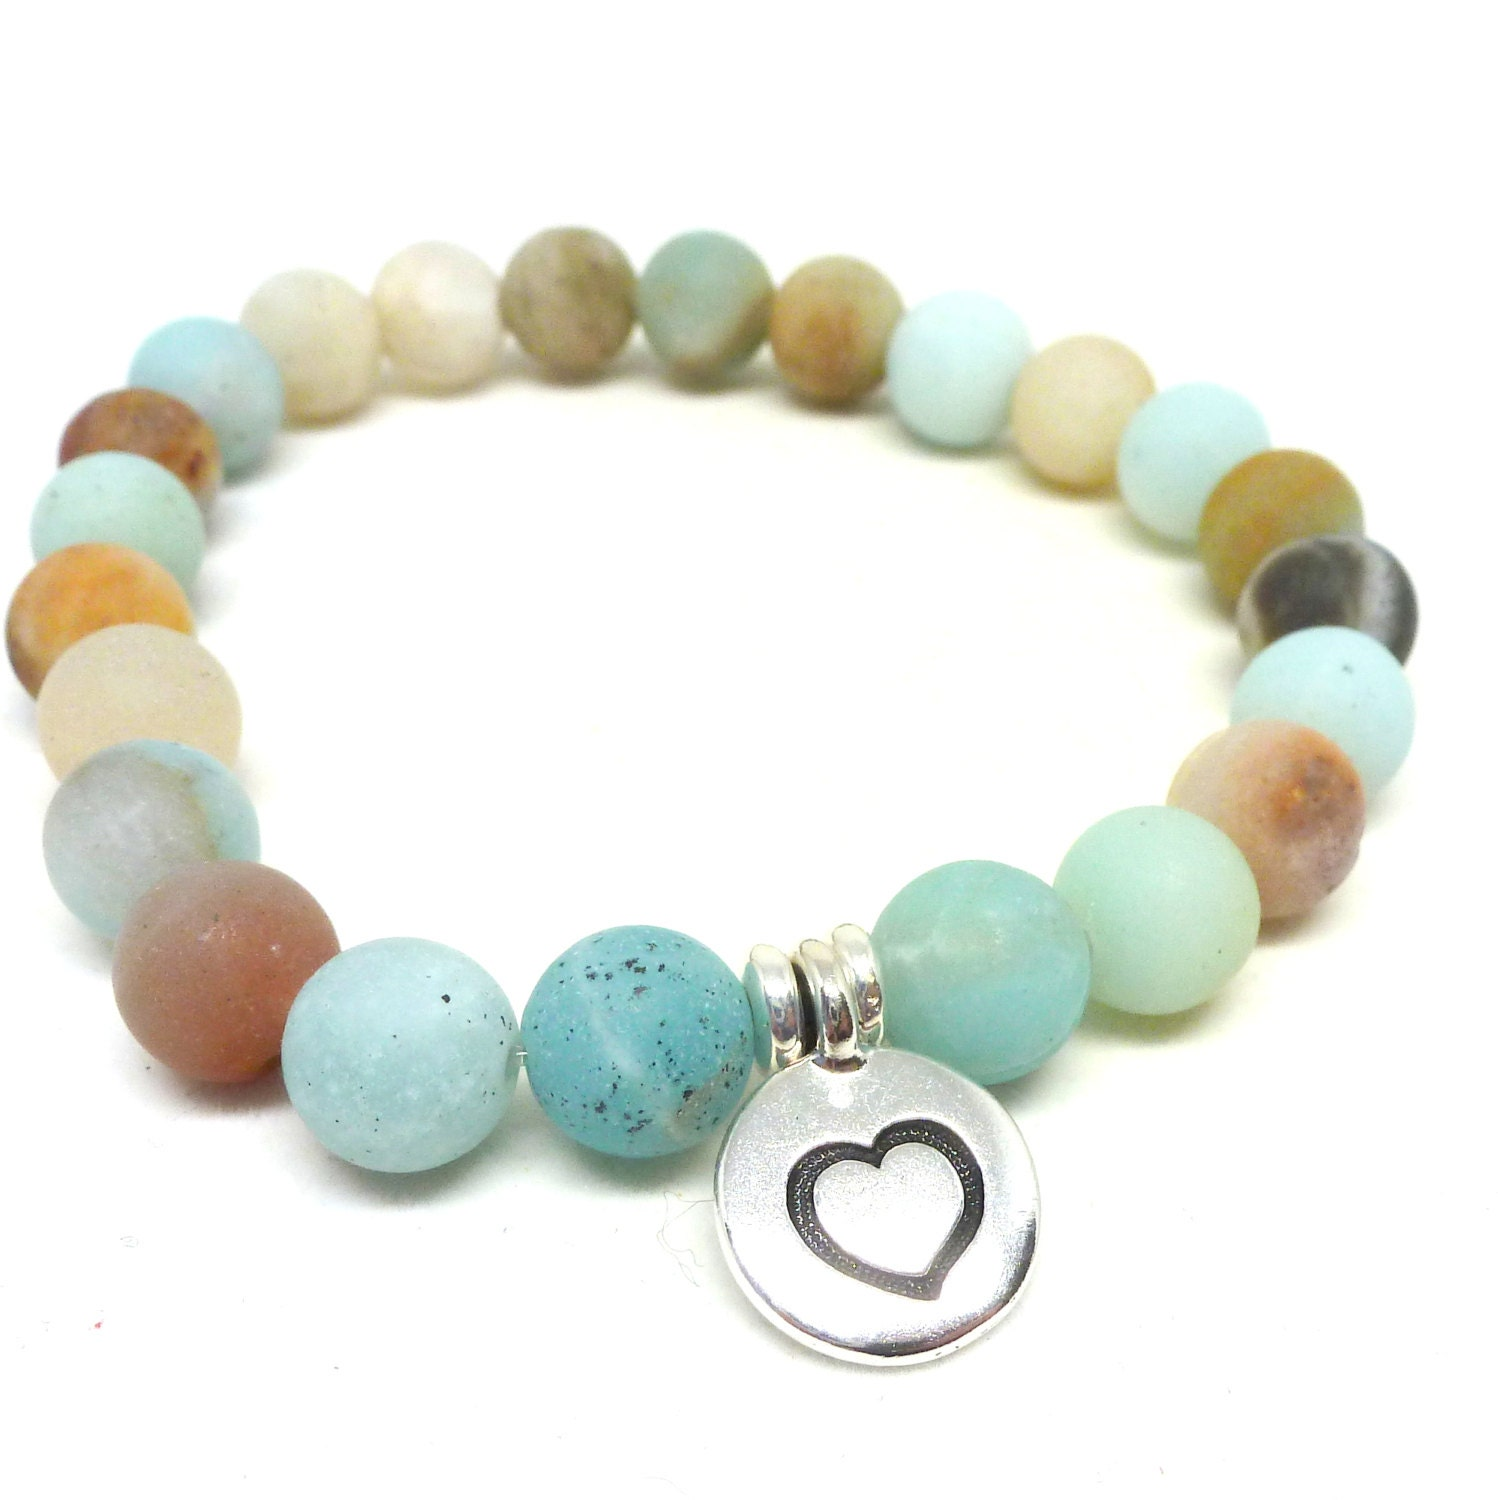 frosted amazonite gemstone bead bracelet with silver